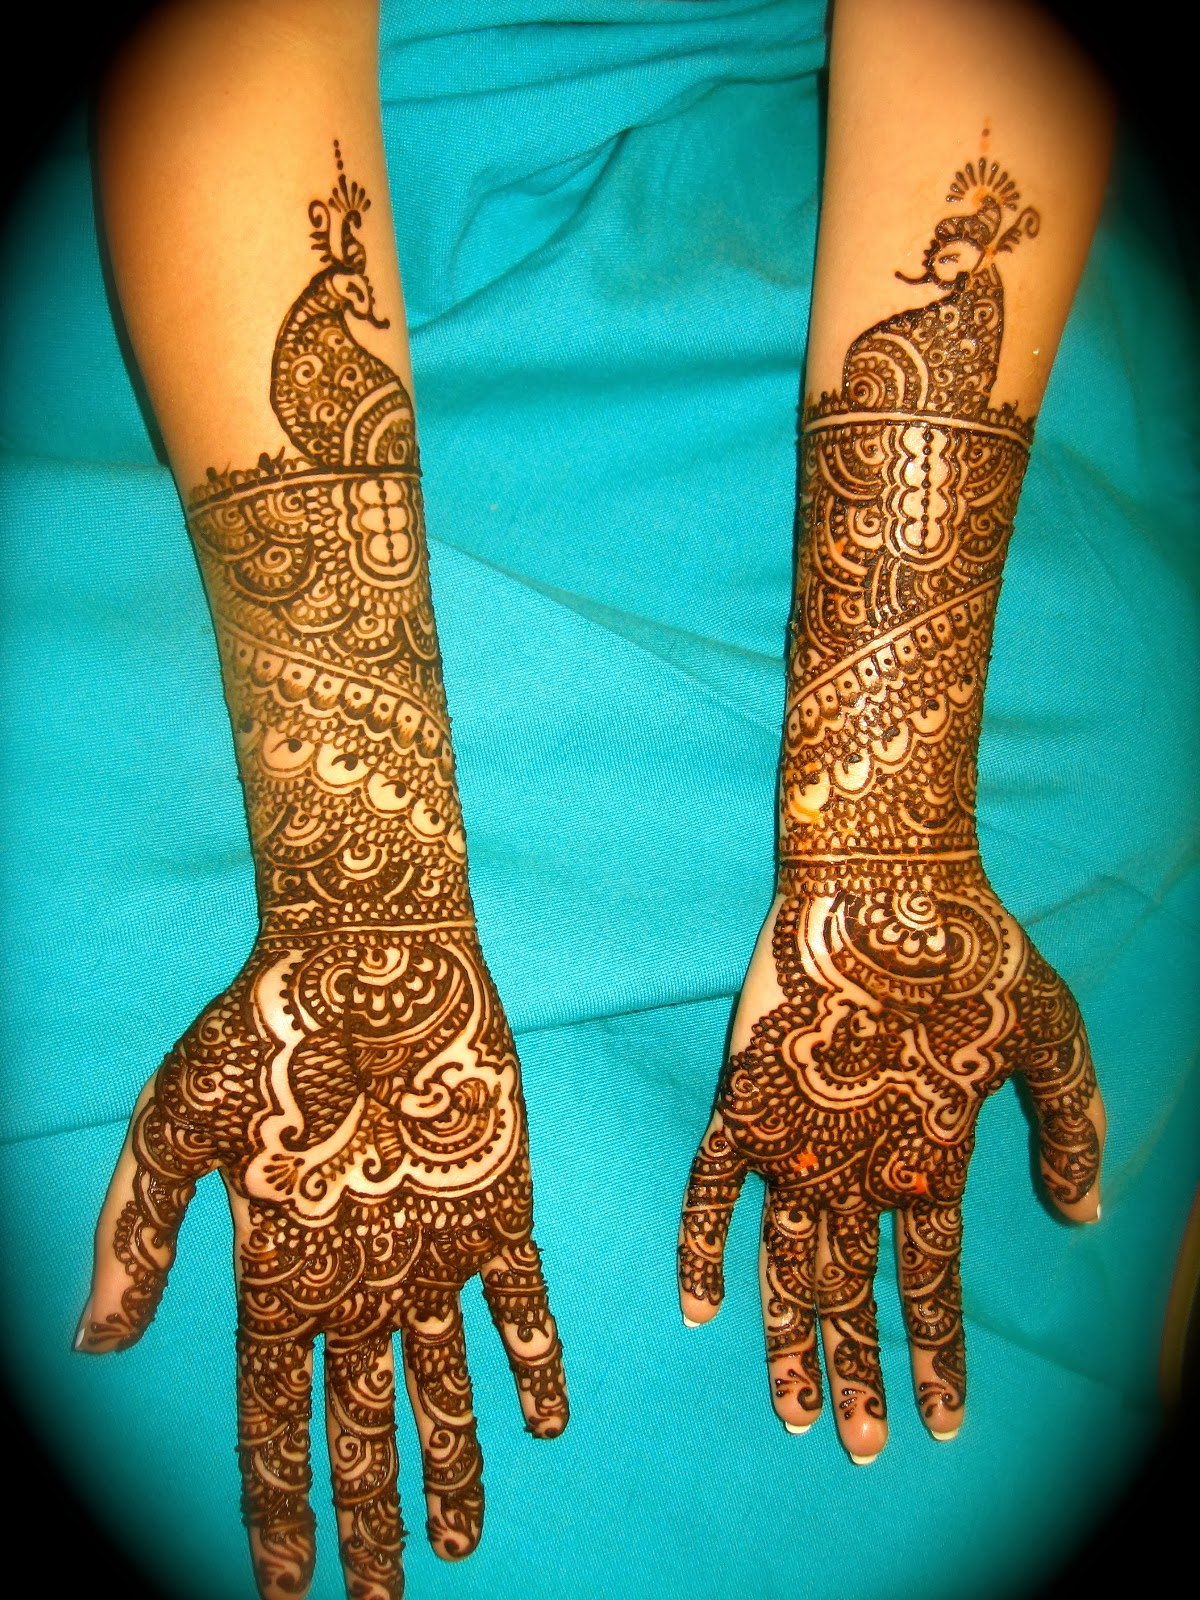 Mehndi Designs For Hands Ebook Free Download : Download images of mehendi designs joy studio design